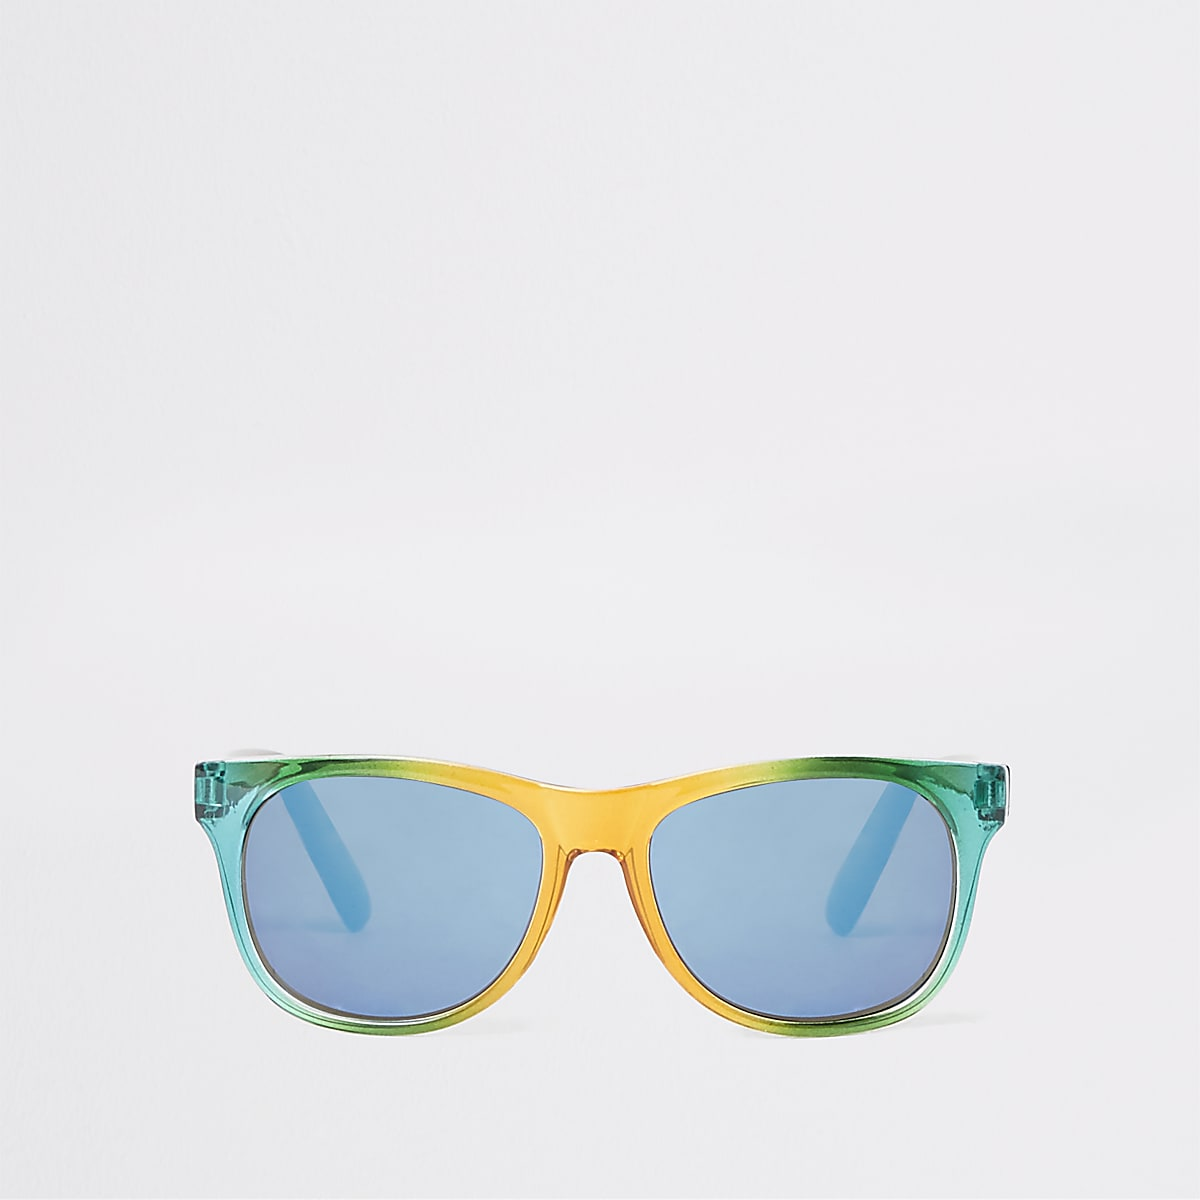 Boys rainbow retro sunglasses